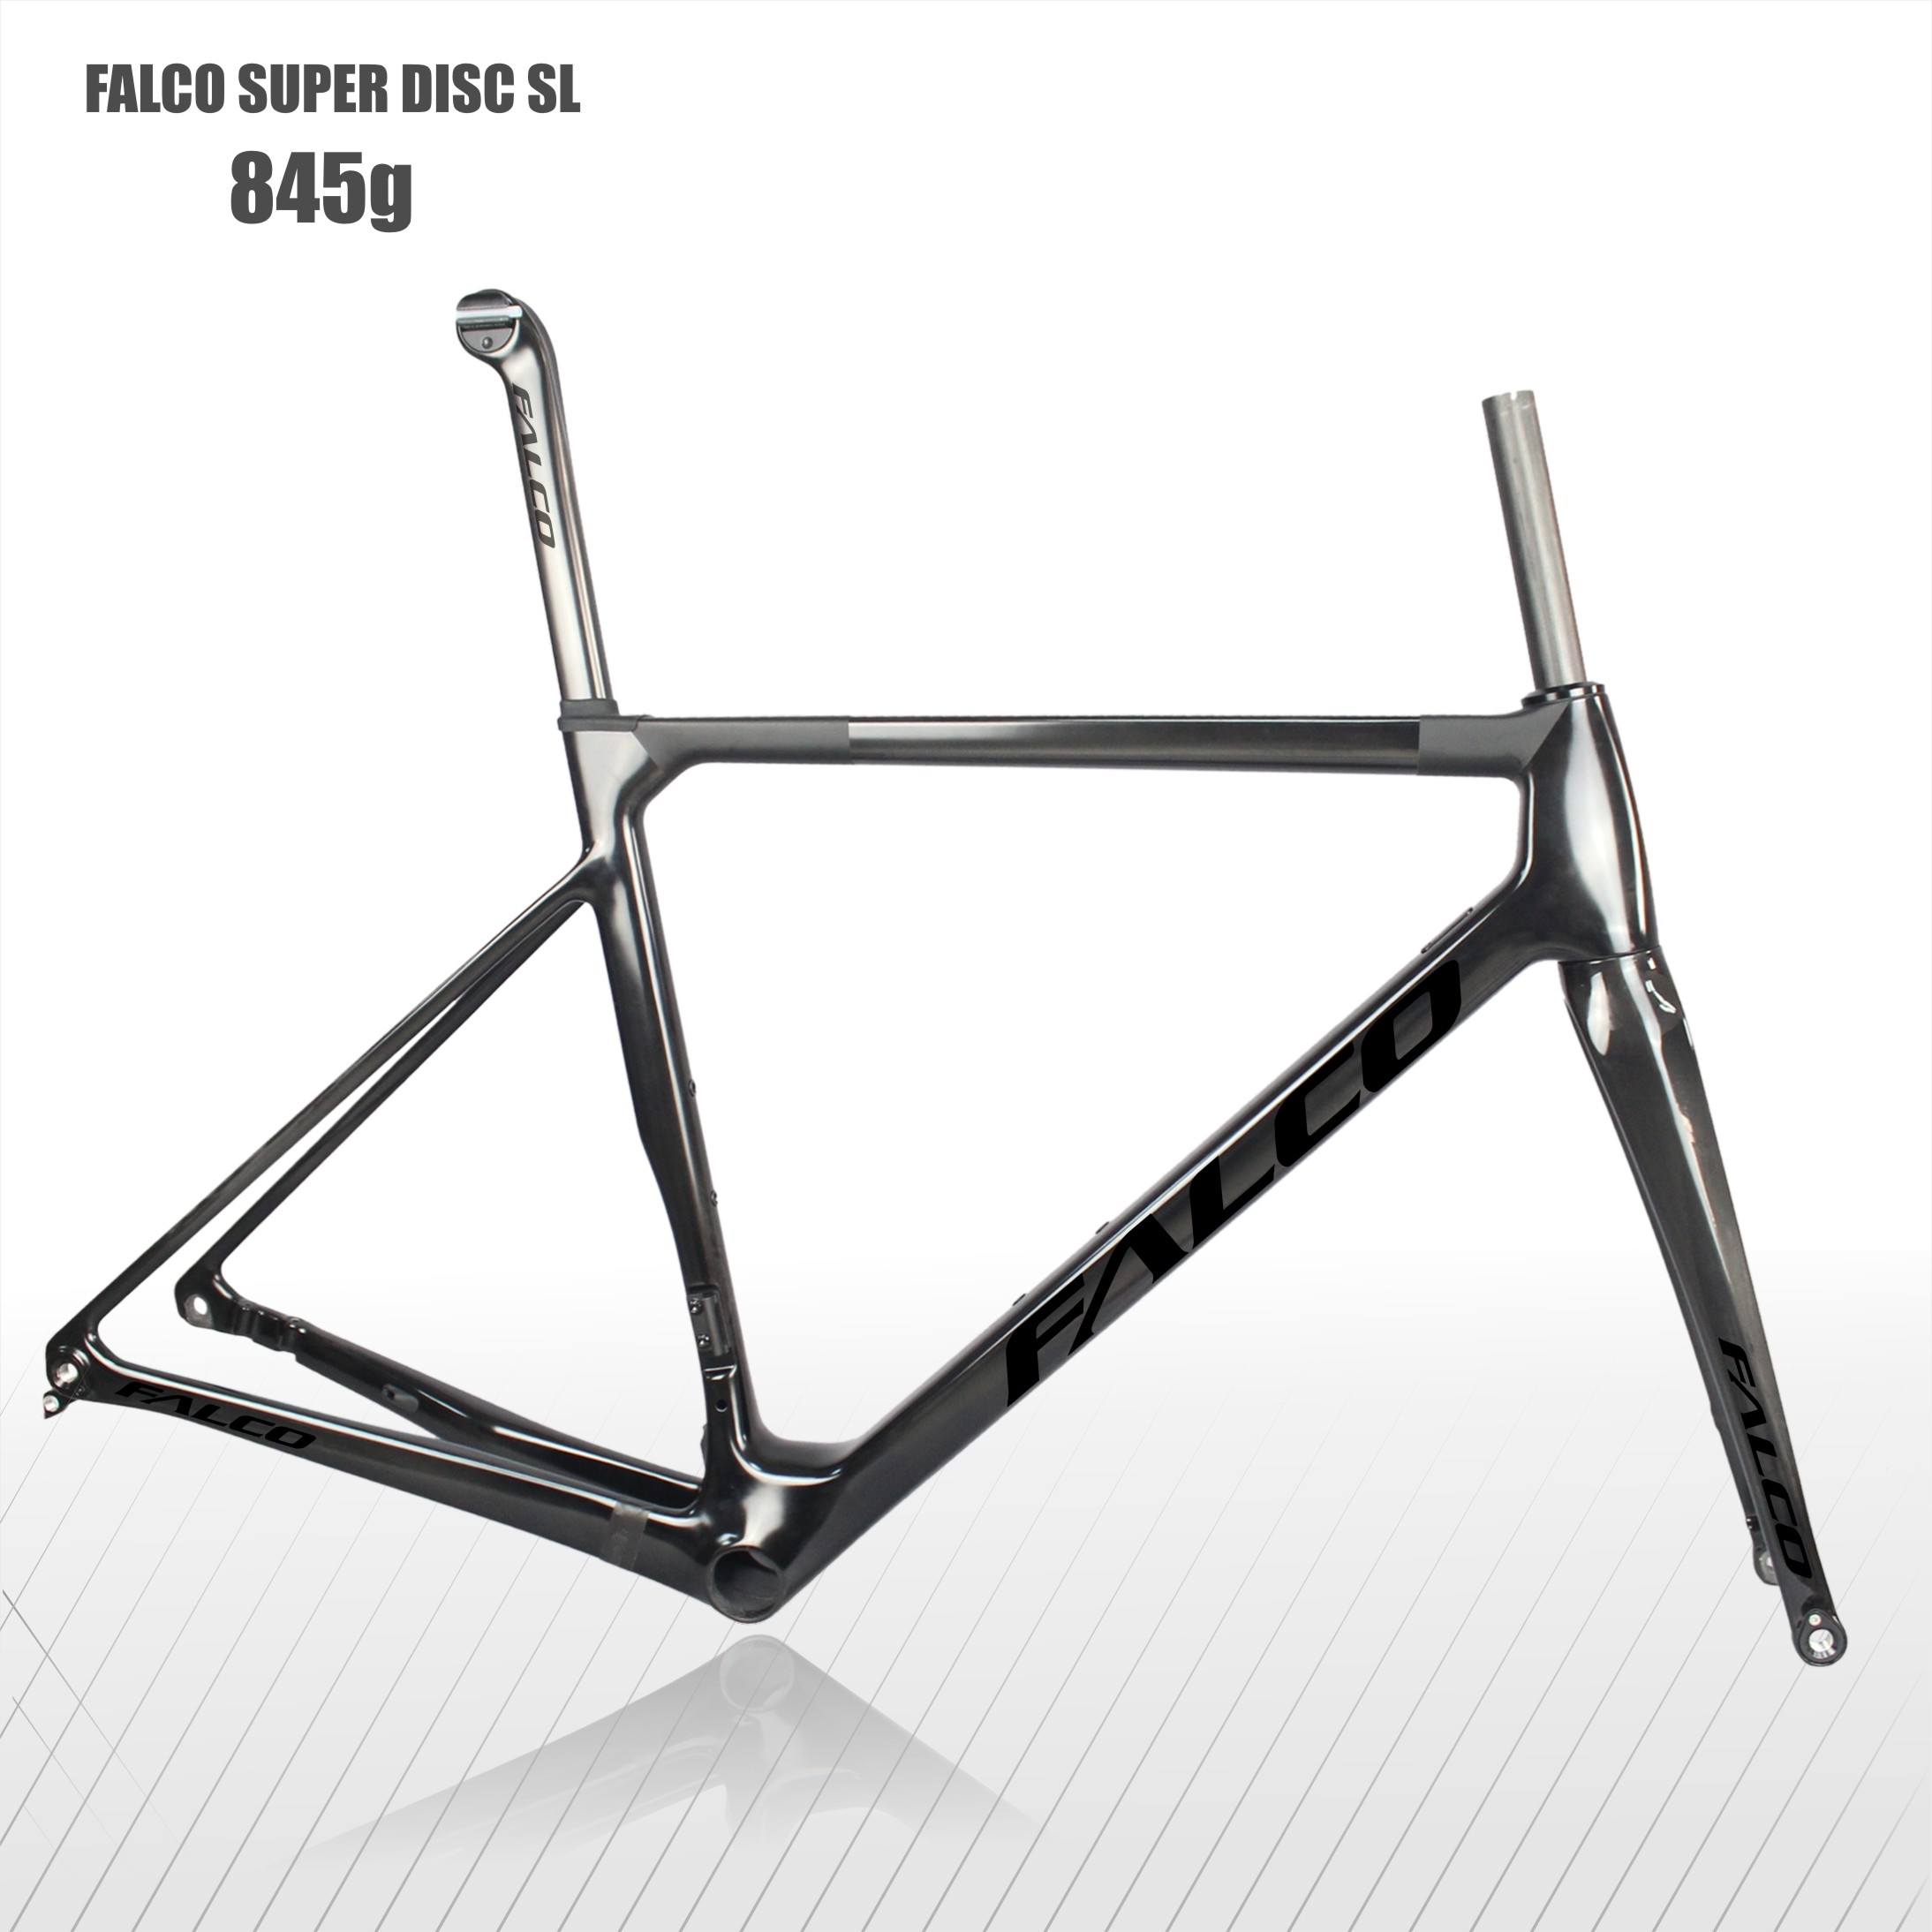 2020 New <strong>carbon</strong> Bike <strong>frame</strong>,T1000 Full <strong>Carbon</strong> fiber Disc <strong>Road</strong> Bike <strong>frame</strong>;Please contact us for wholesale prices